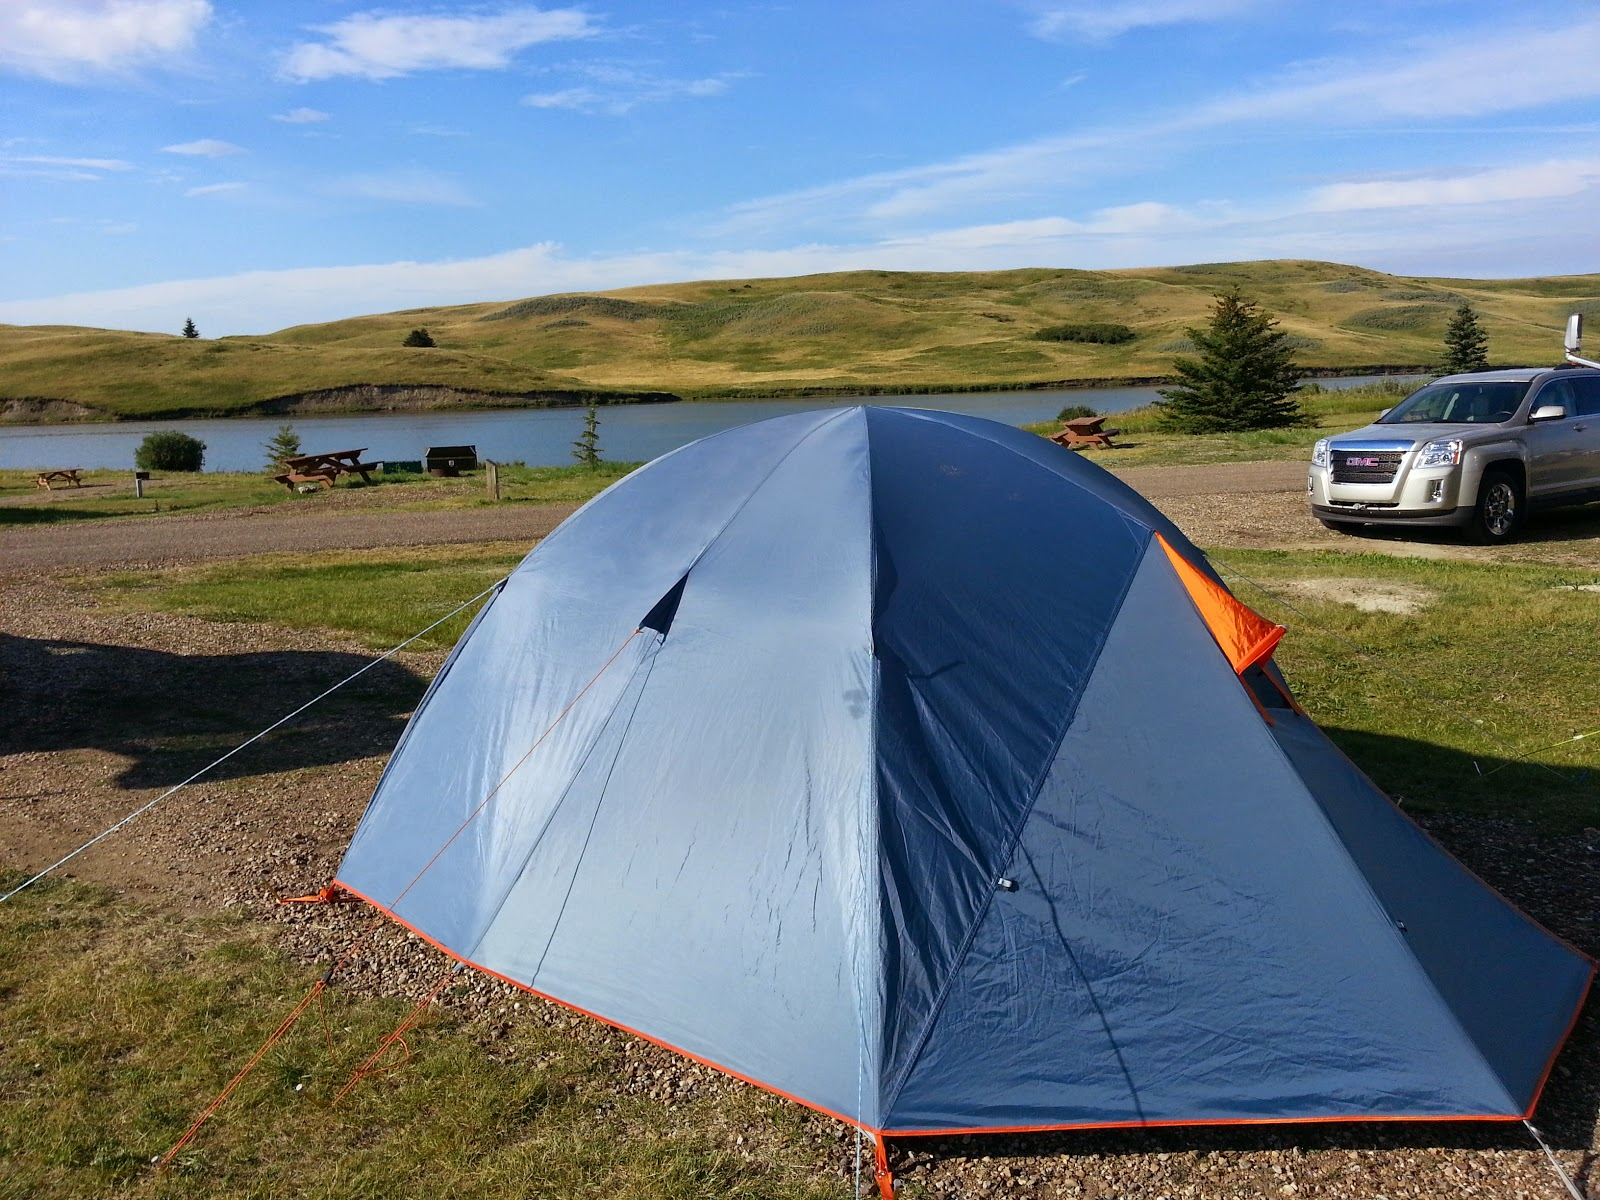 MEC Wanderer Tent - check out that fly! Pretty weatherproof! & How to Choose a Tent Qu0026A - Play Outside Guide